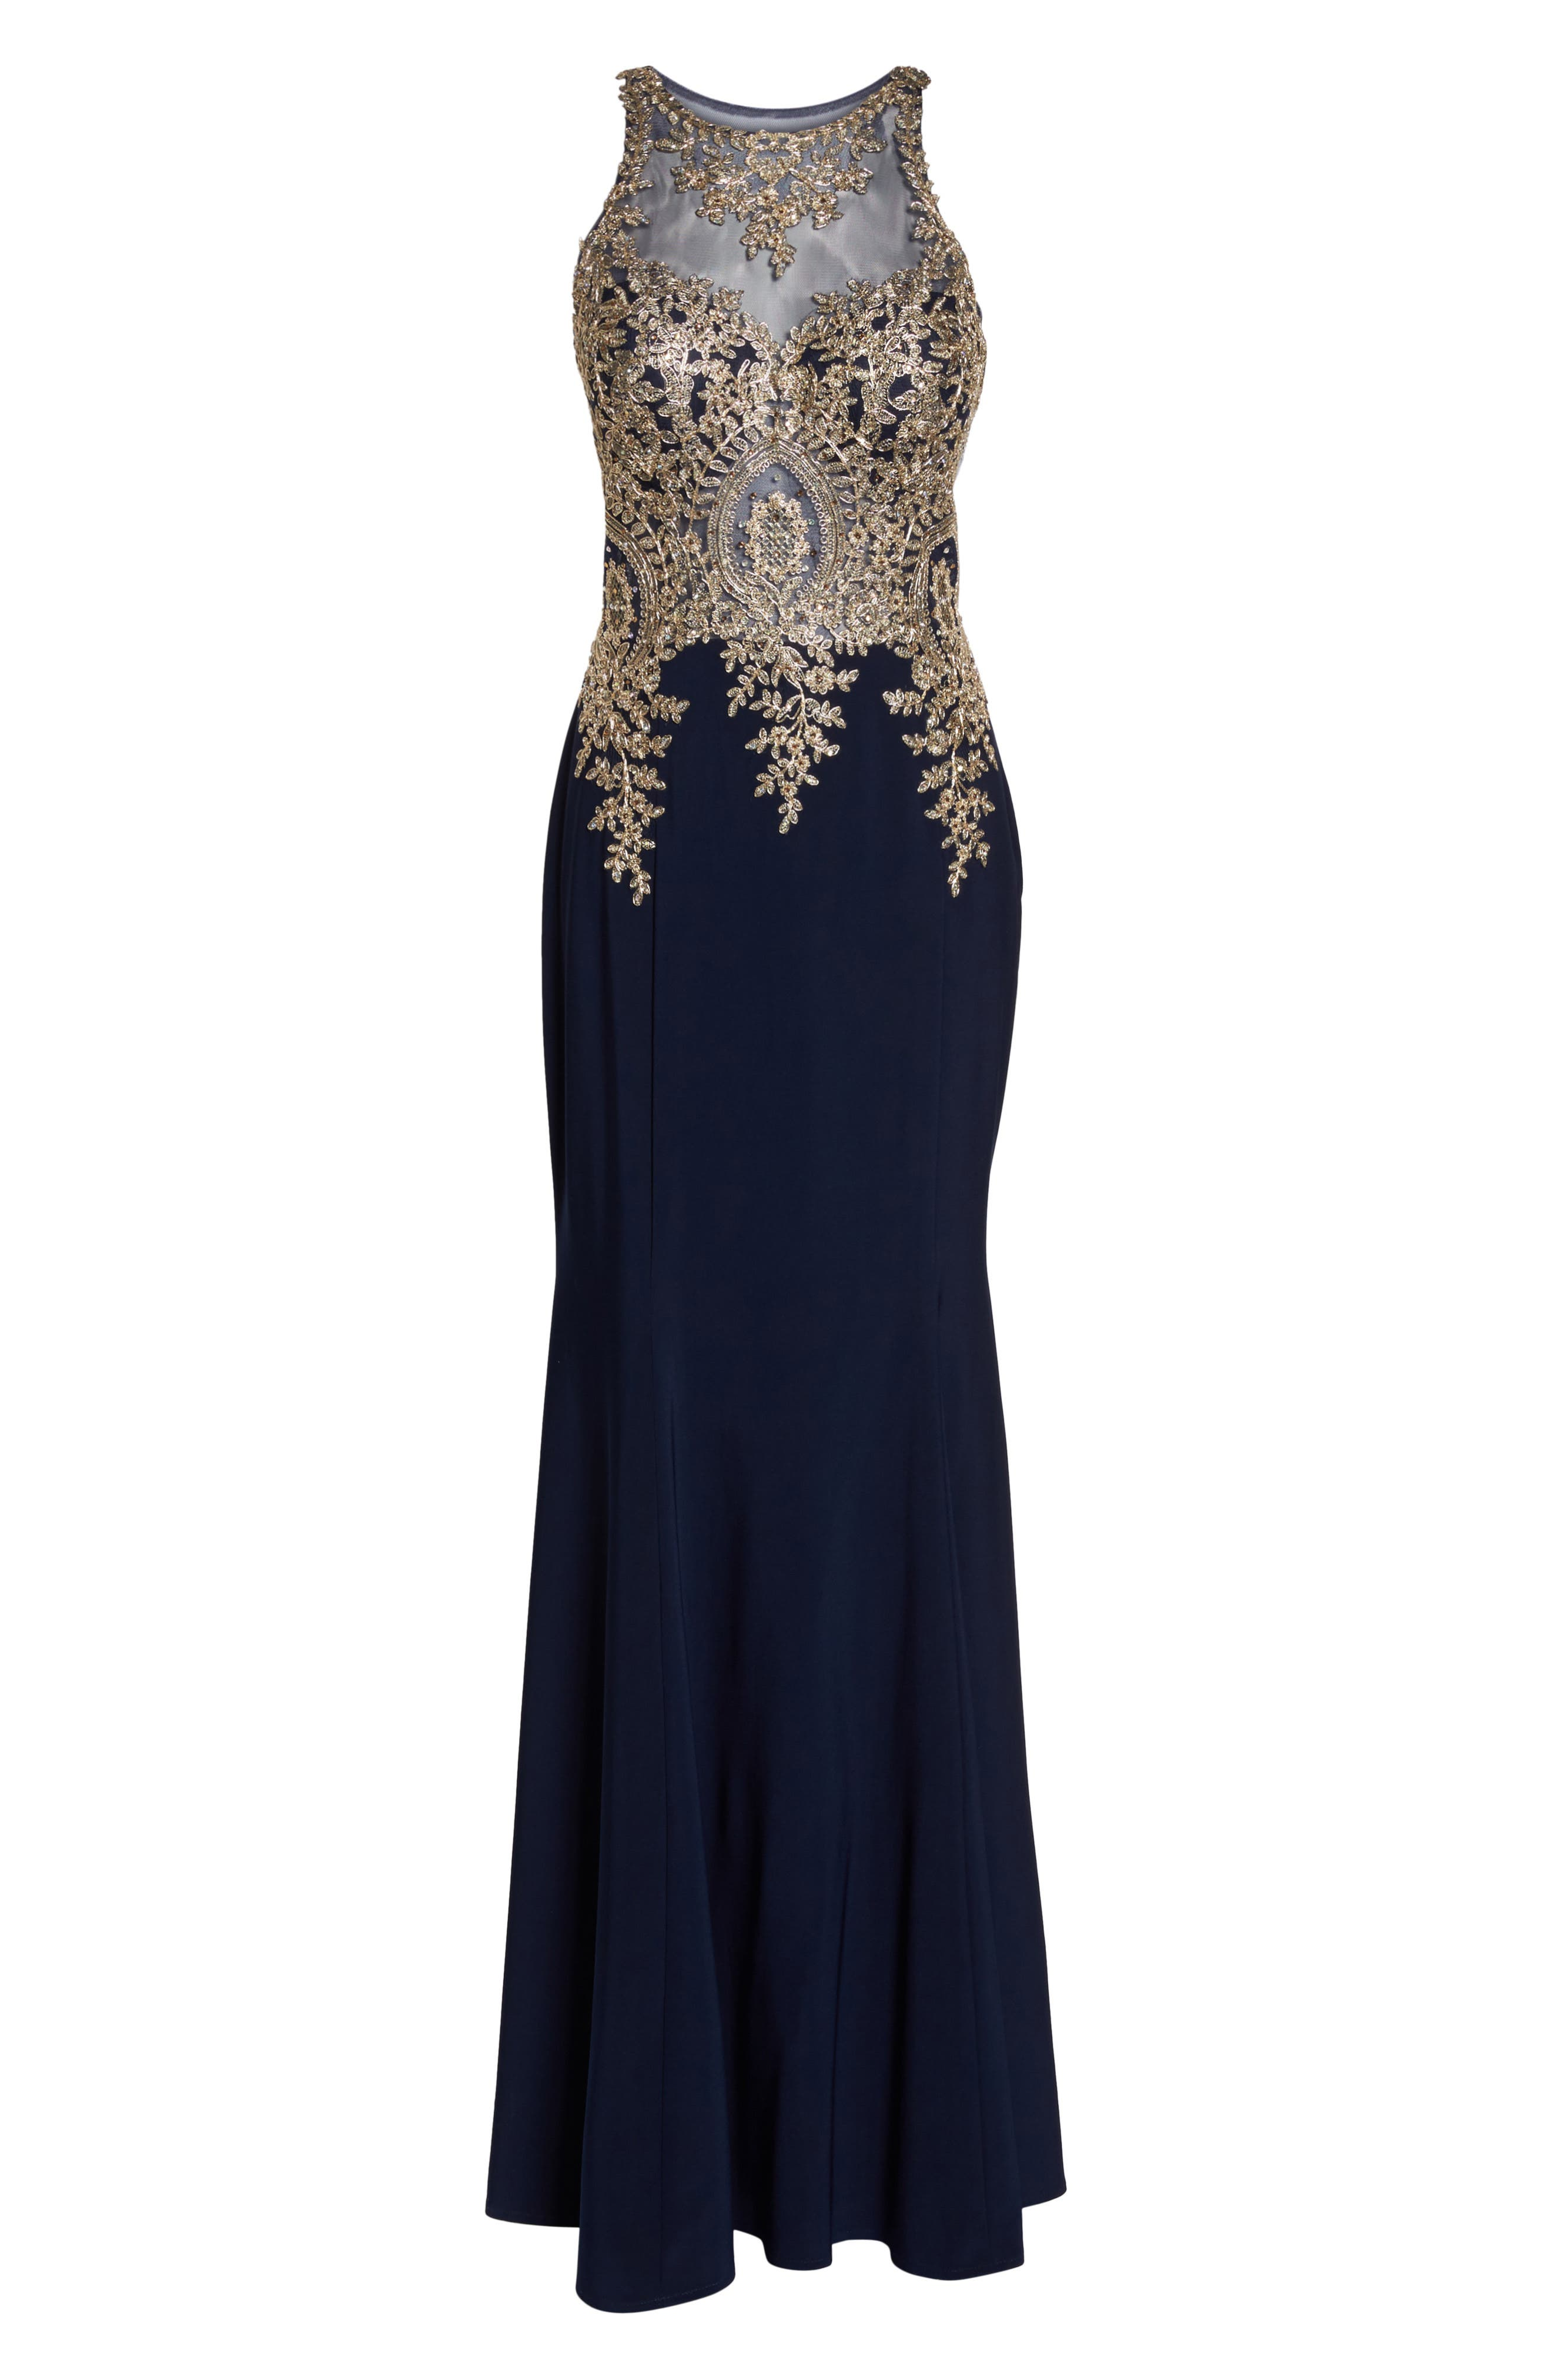 Embellished Mermaid Gown,                             Alternate thumbnail 6, color,                             409